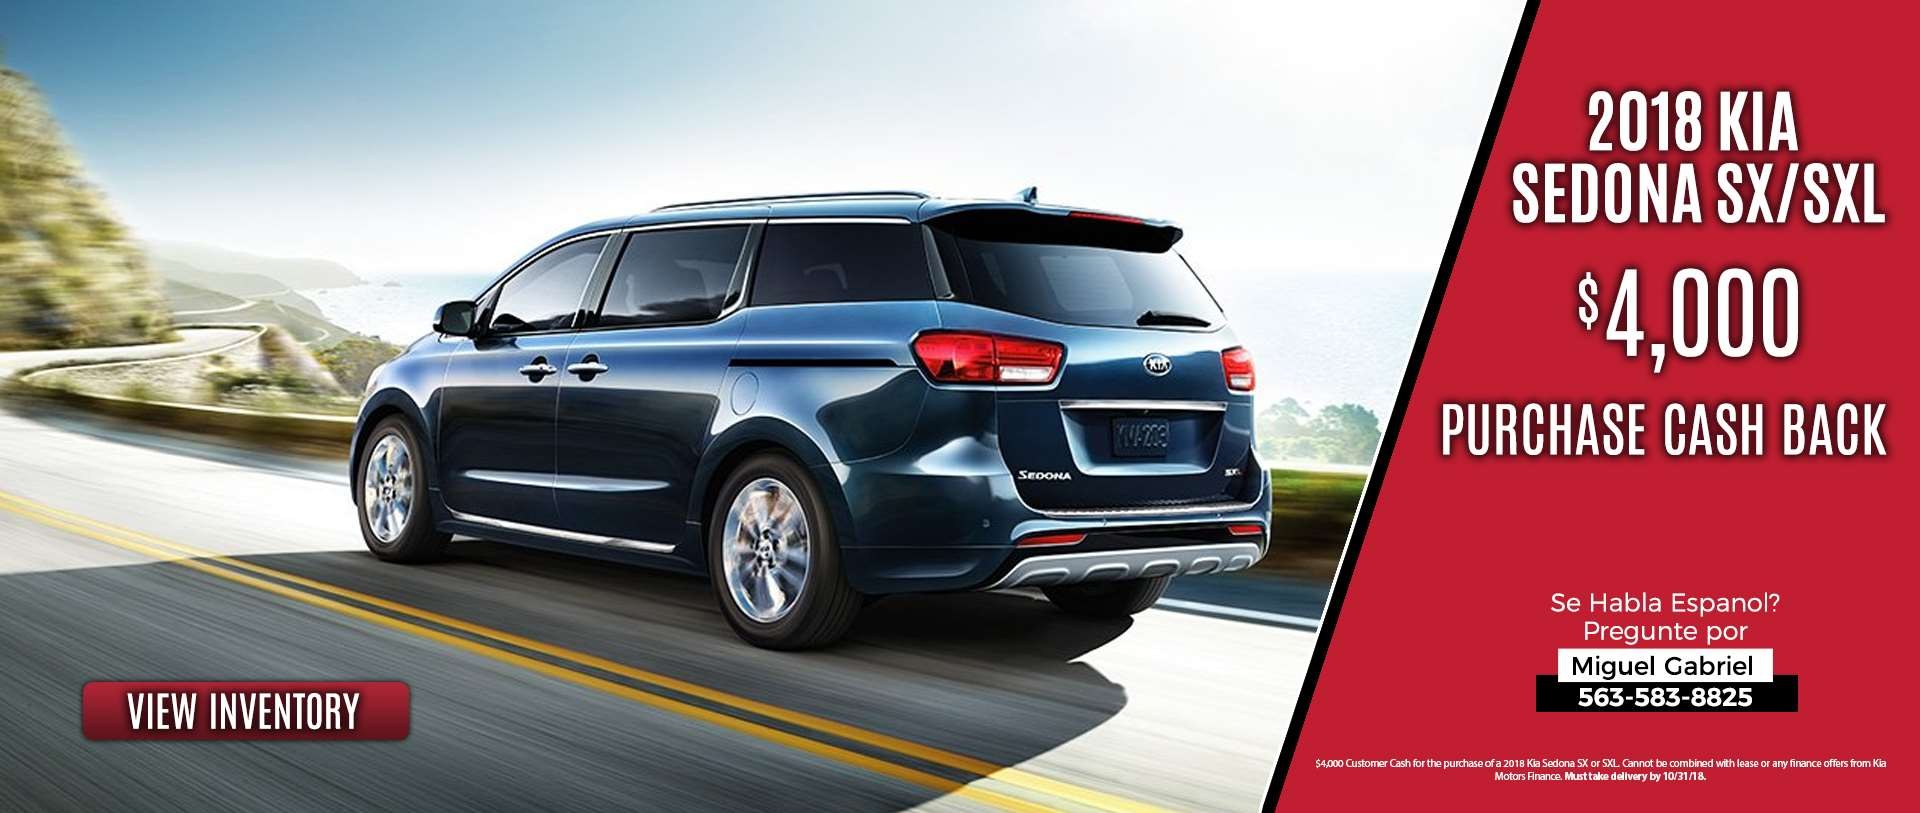 Kia Sedona SX Offer